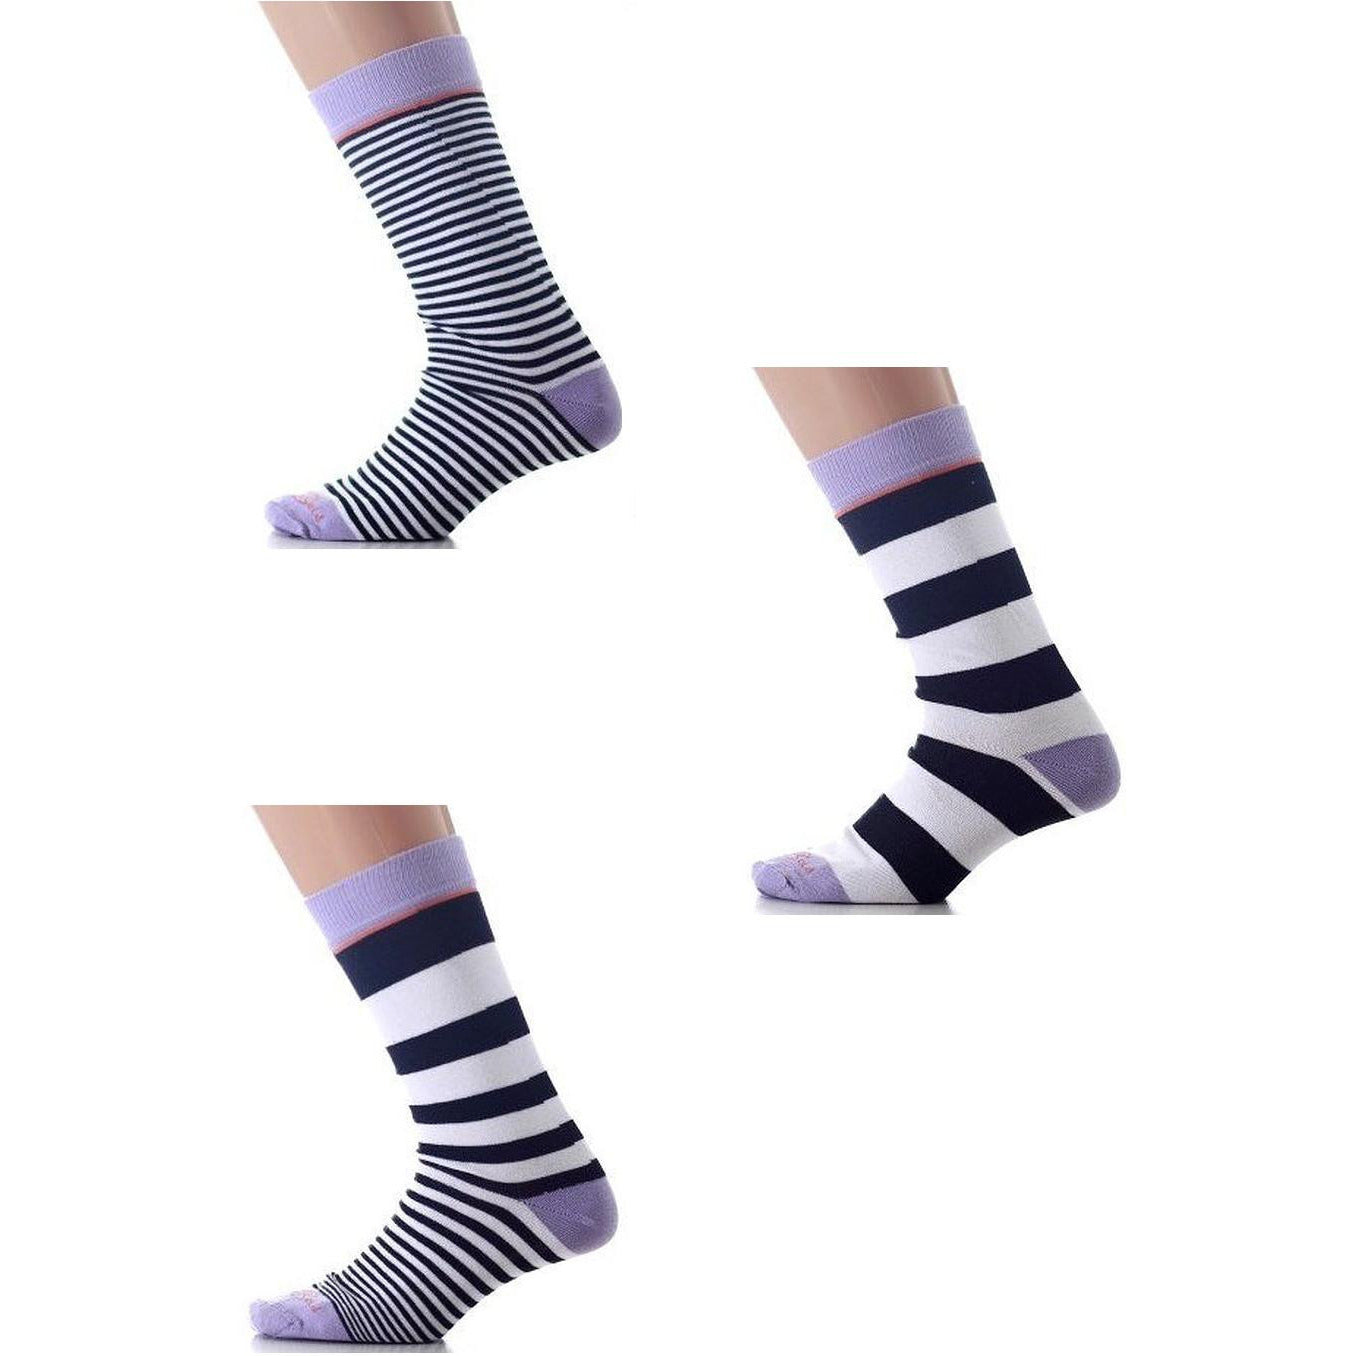 Warm 1 Pairs Unisex Socks Winter Thermal Casual Soft Cotton Sport Sock Gift AR1